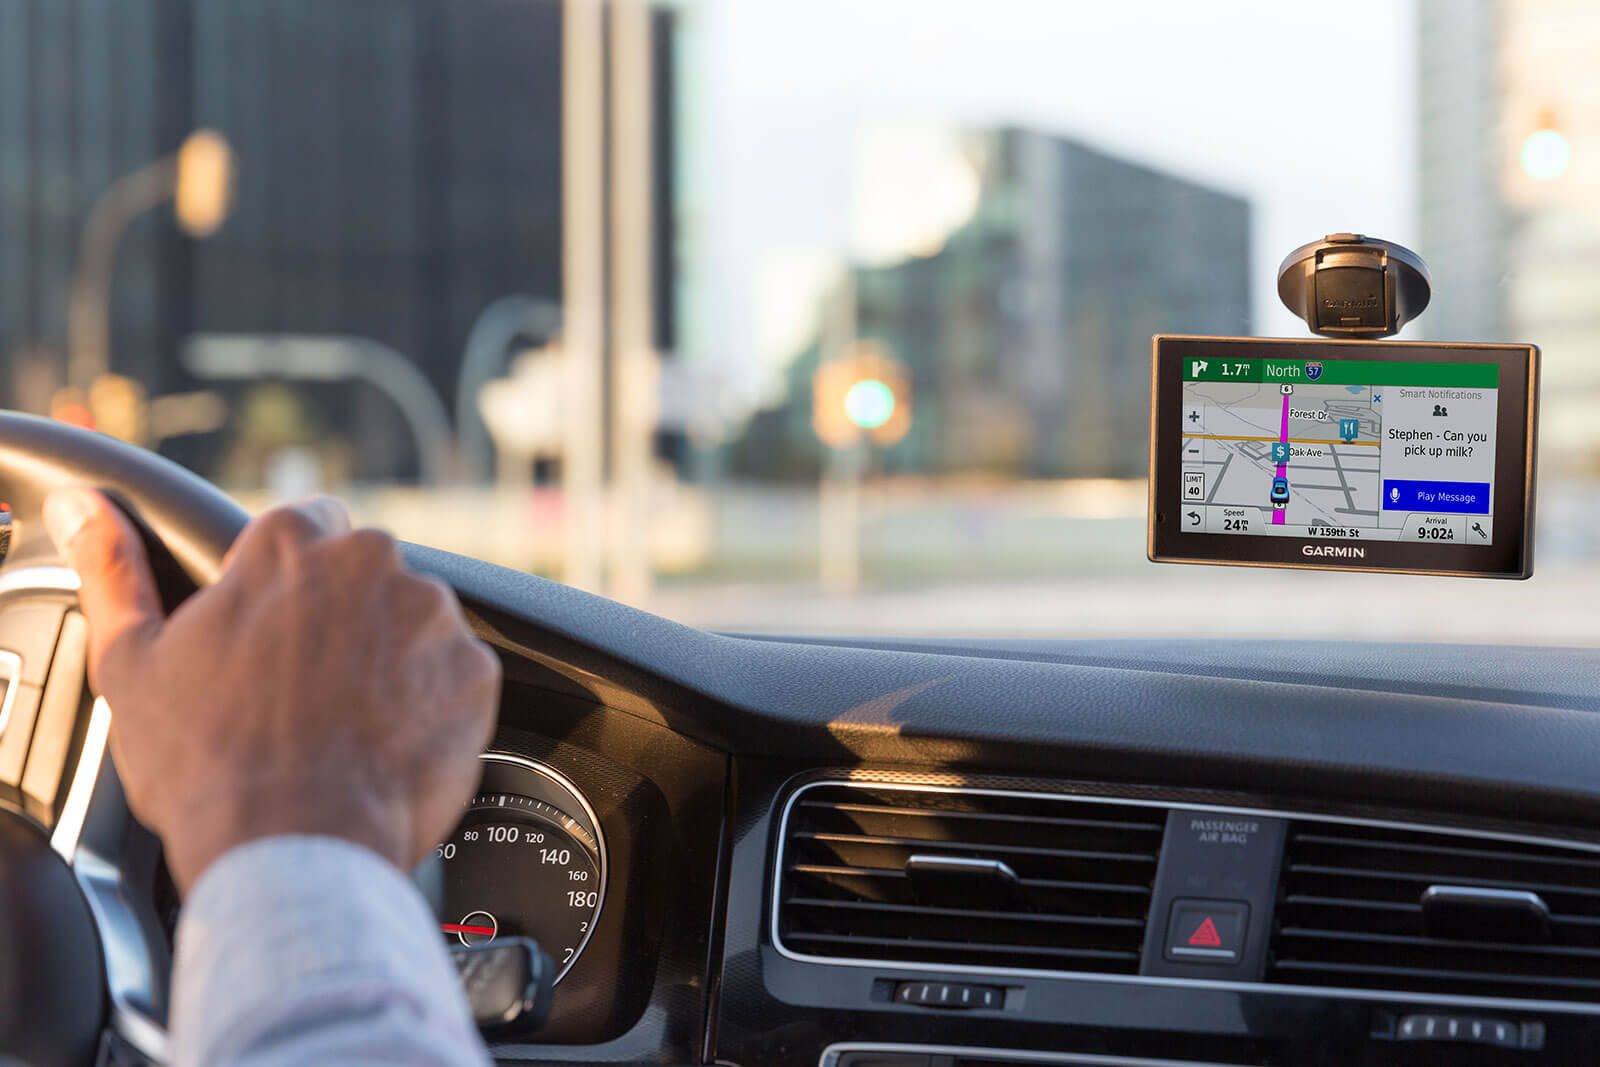 Car Navigation Systems vs. Smartphones and Other GPS Options